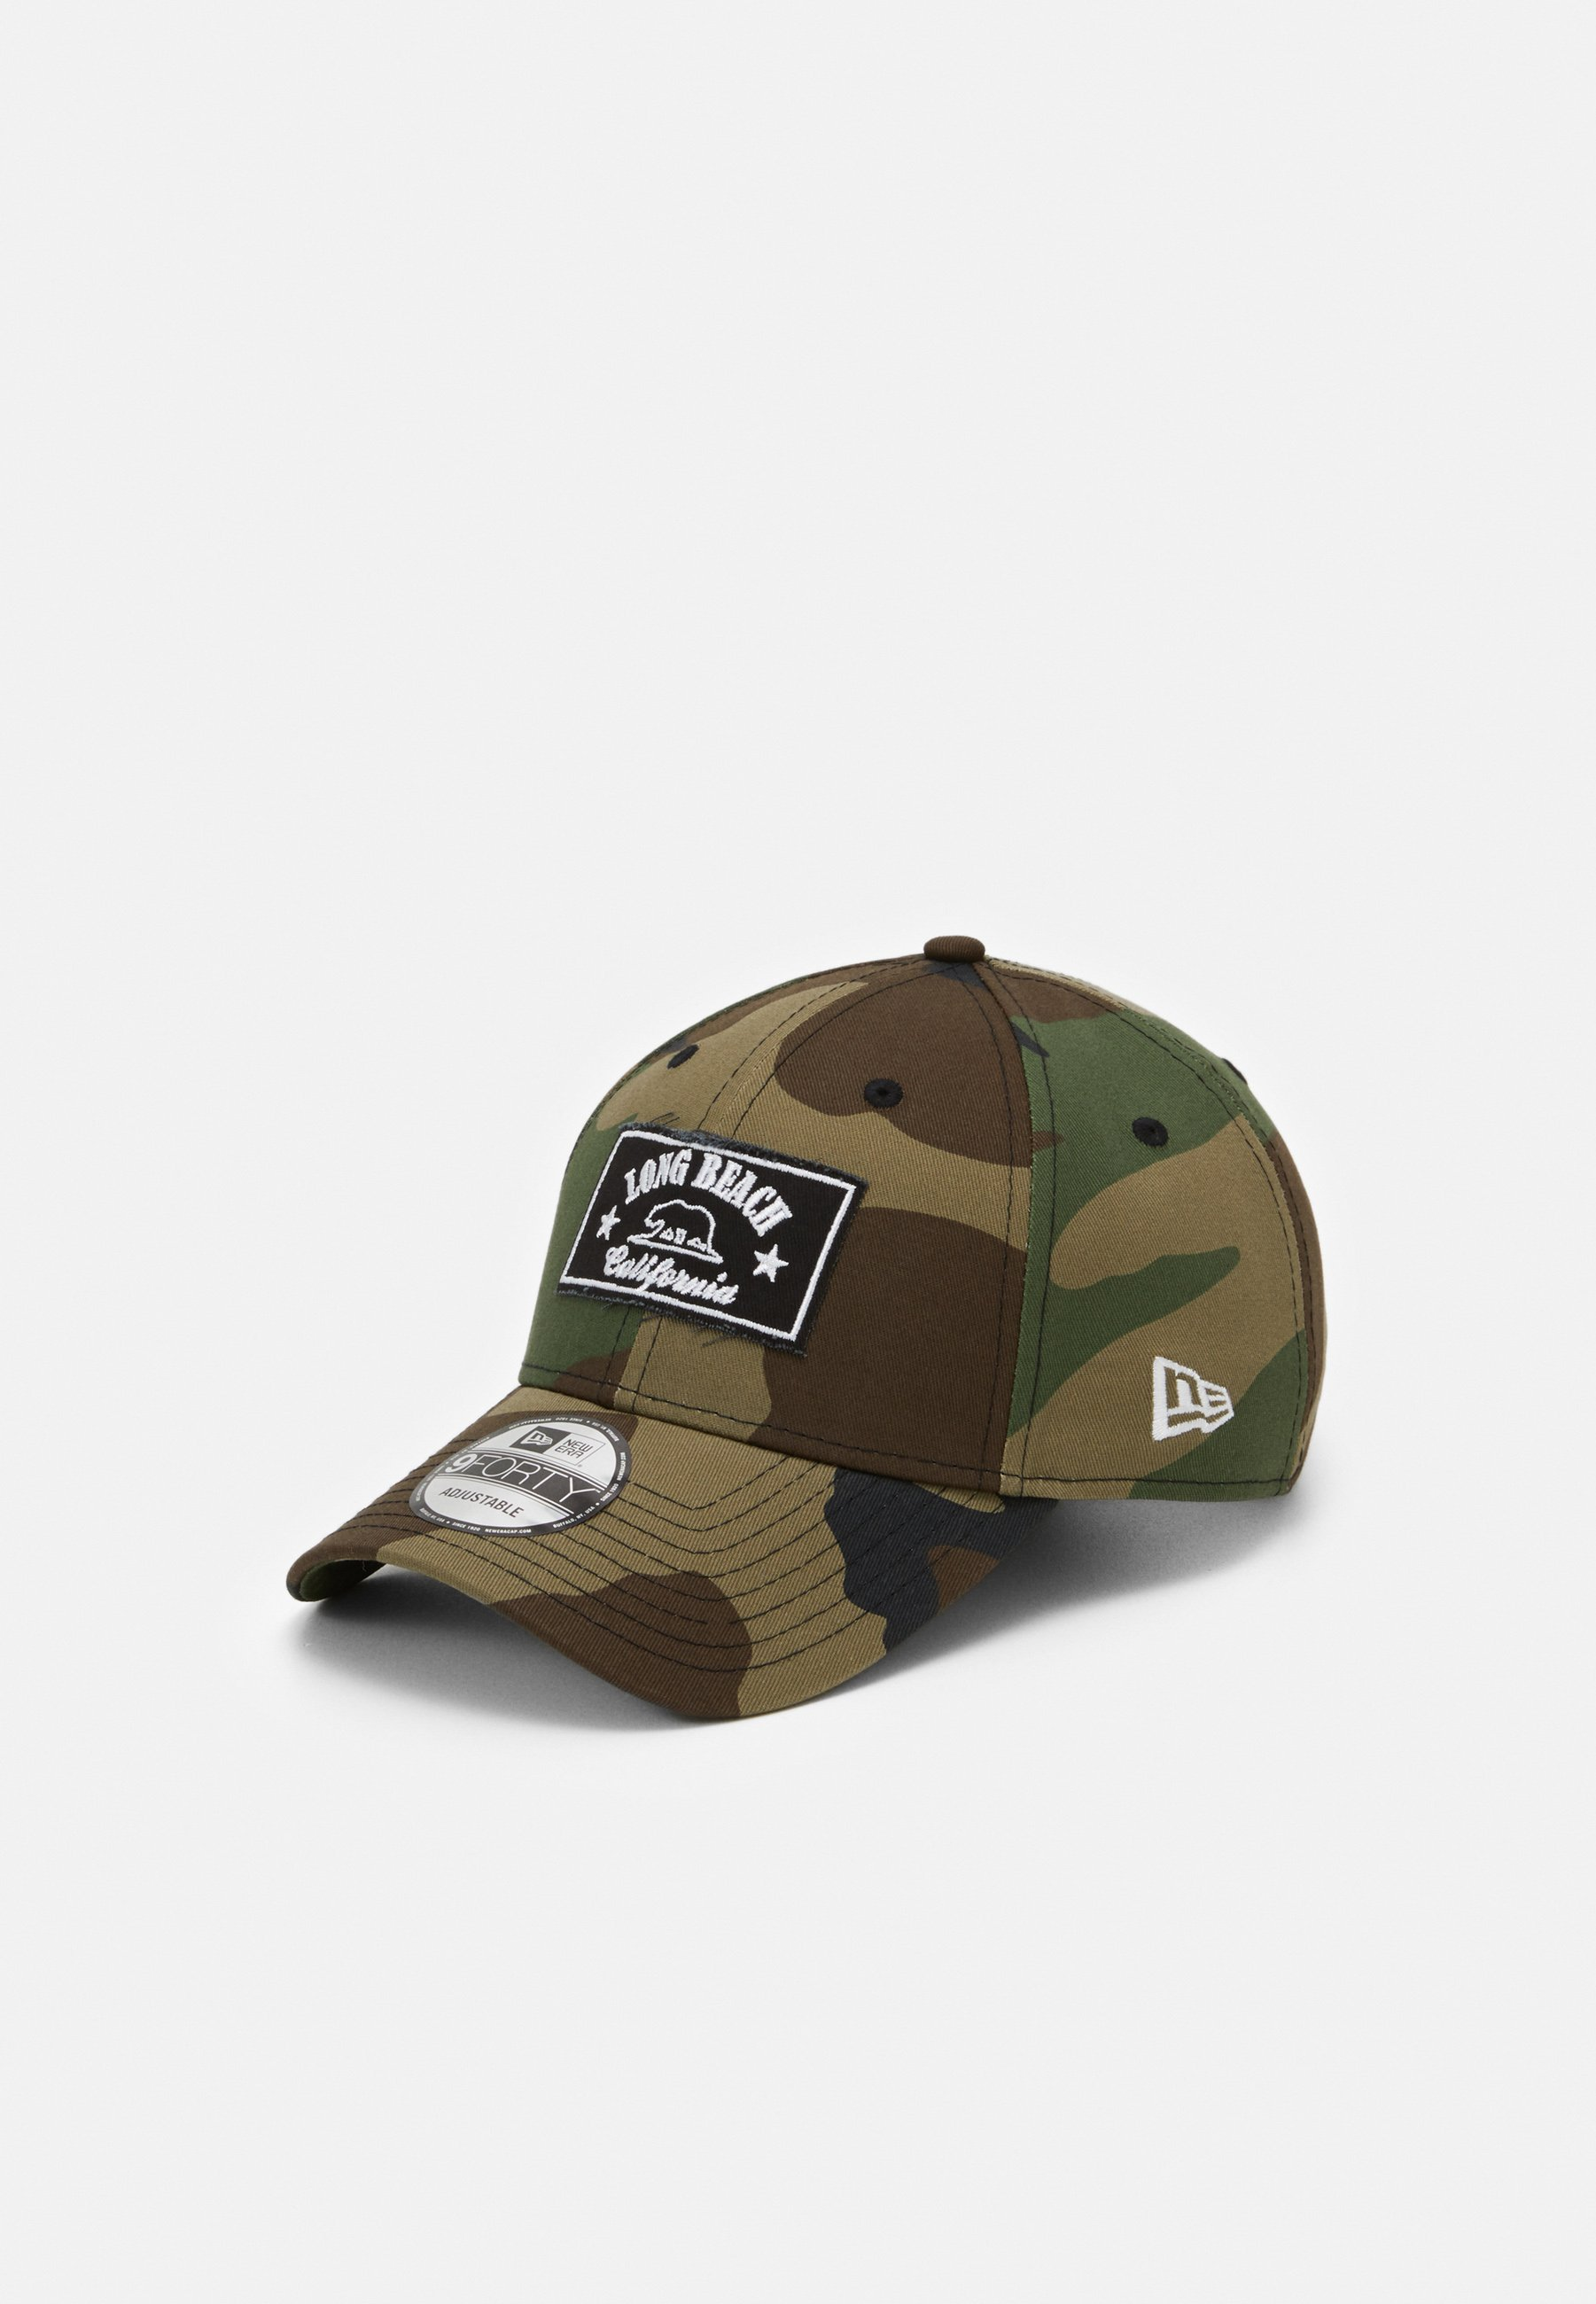 New Era Long Beach - Cap Black/schwarz